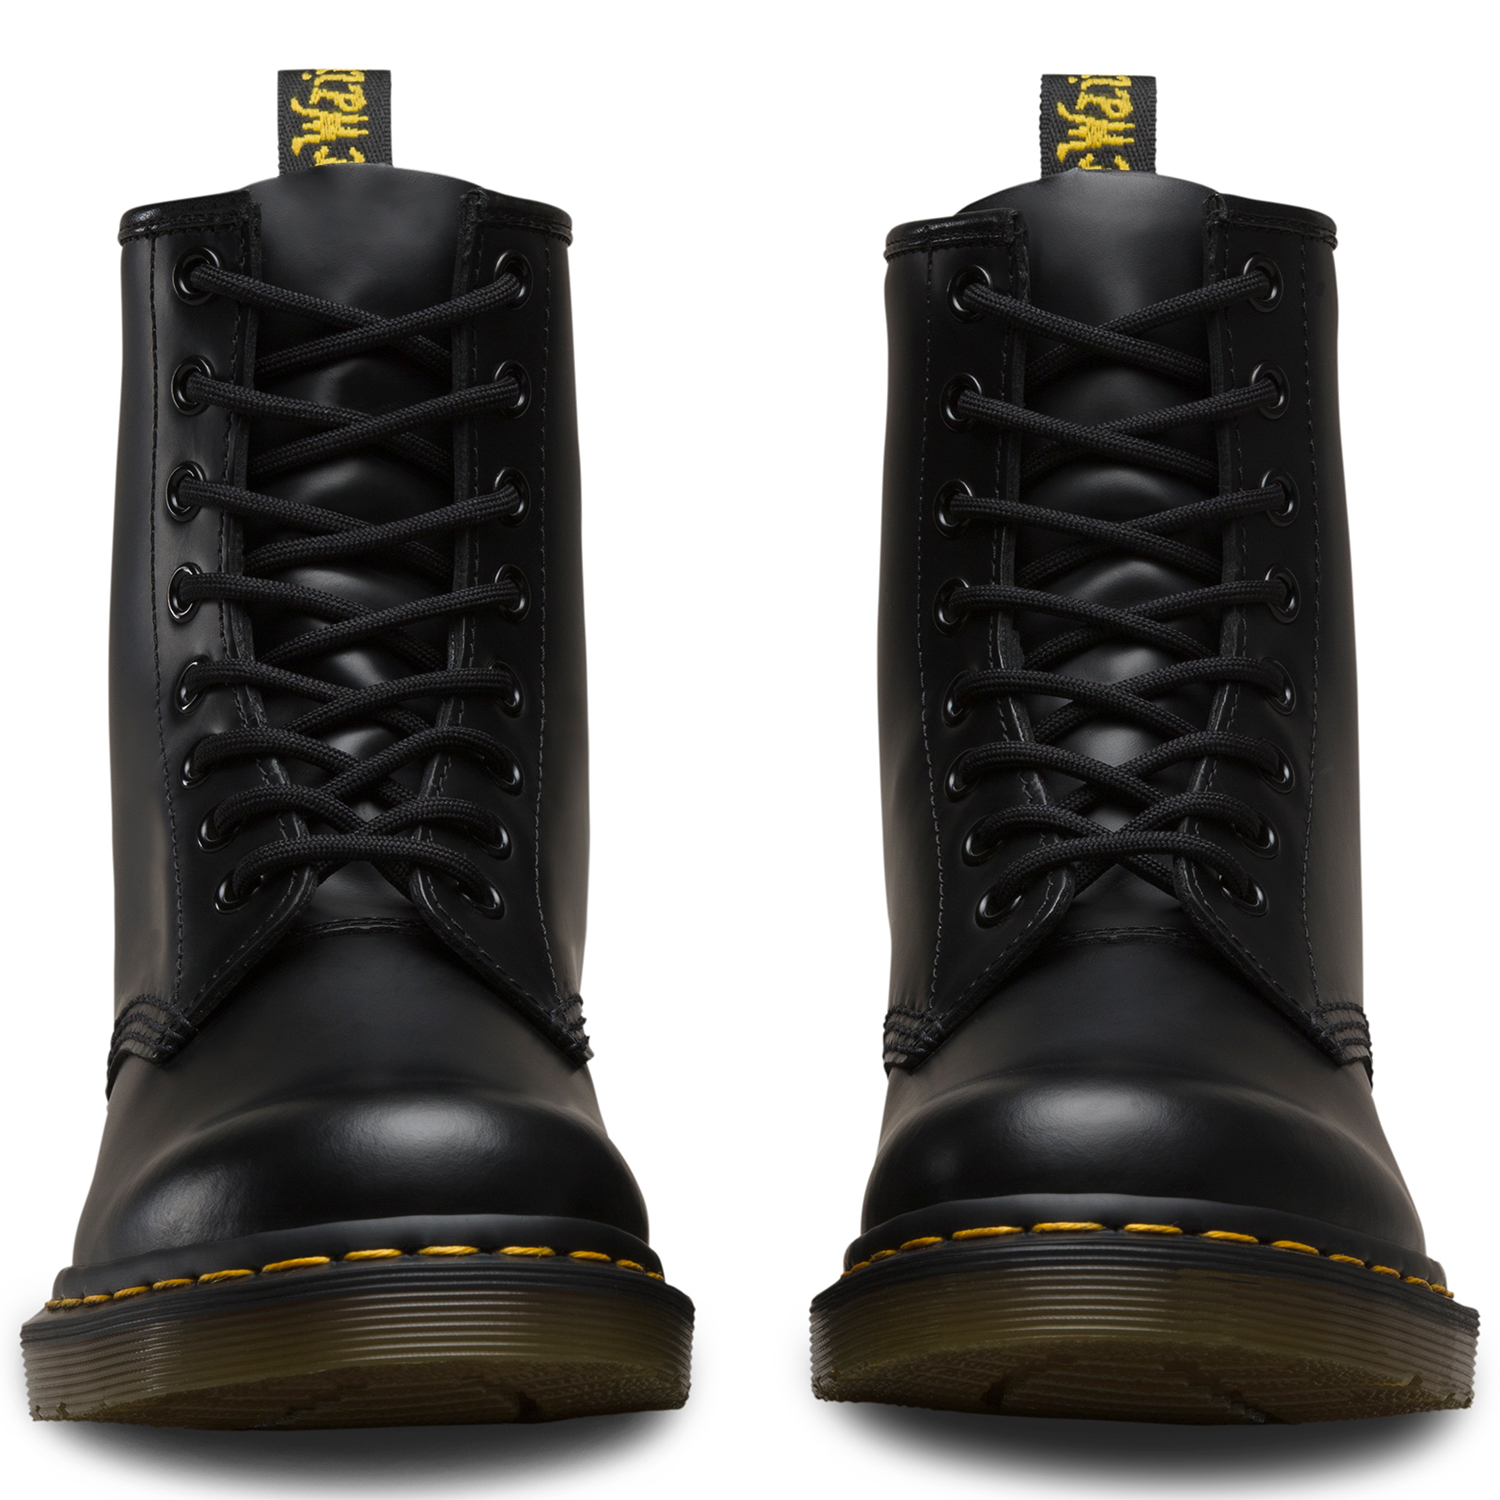 Stivali Dr Martens 1460 Black Smooth in saldo su Country